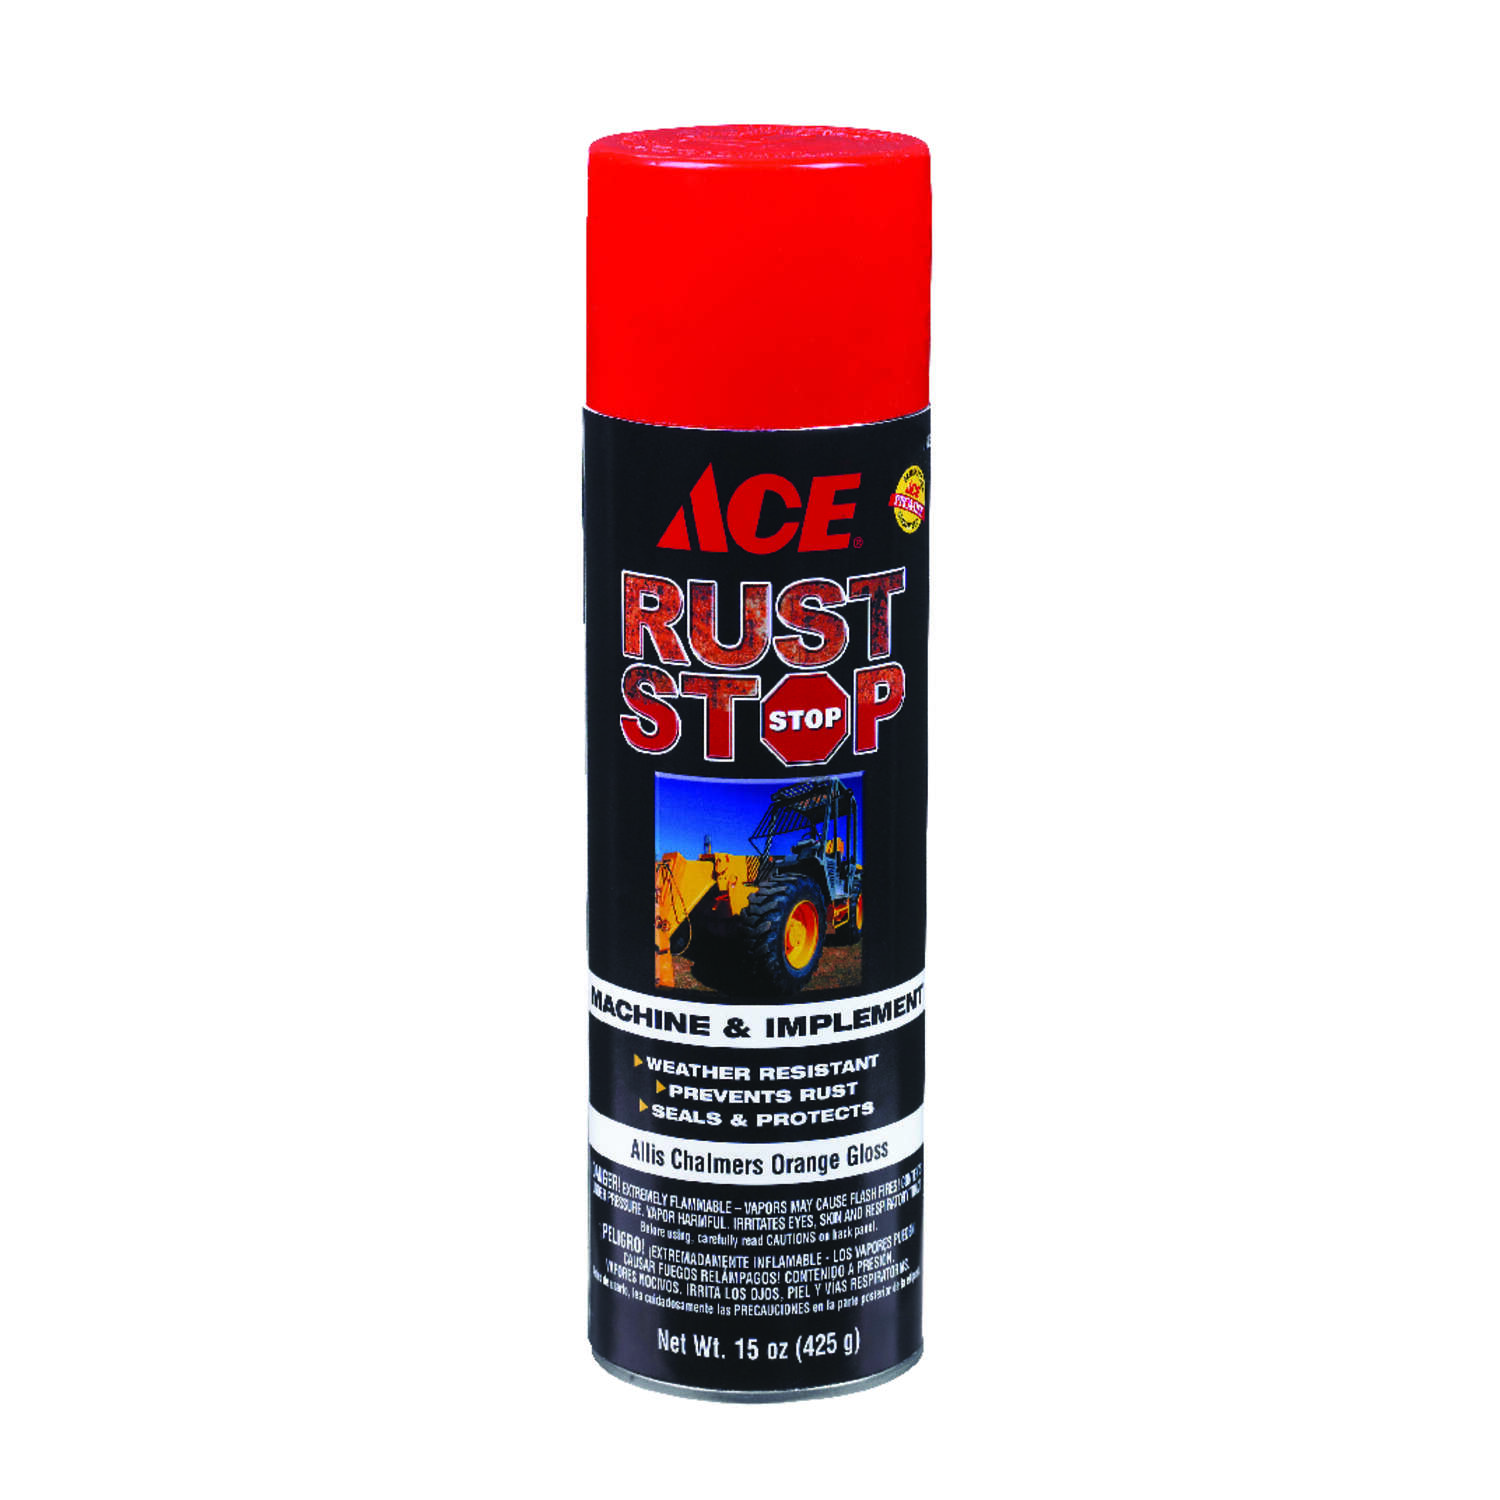 Ace  Rust Stop  Gloss  Allis Chalmers Orange  Machine And Implement Enamel Spray Paint  15 oz.